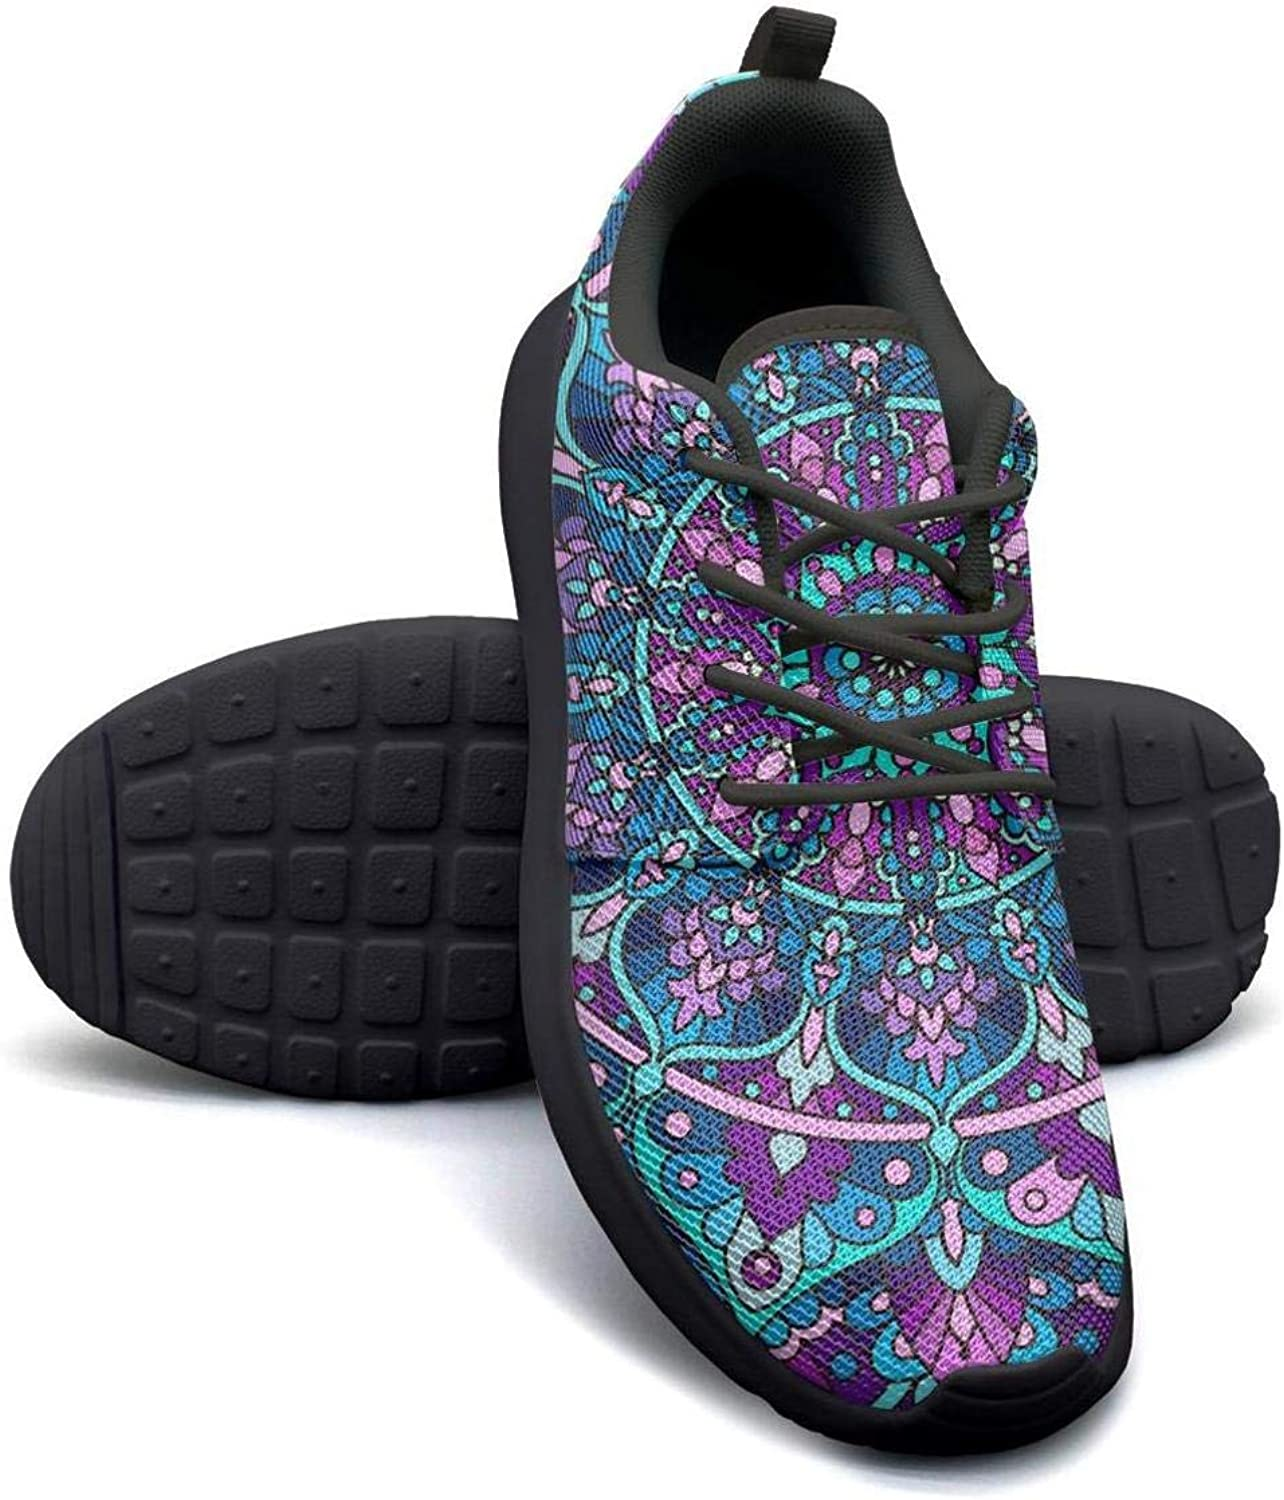 Vosda Purple Design Running shoes Lightweight for Women Sneaker Lace-up Quick Dry shoes